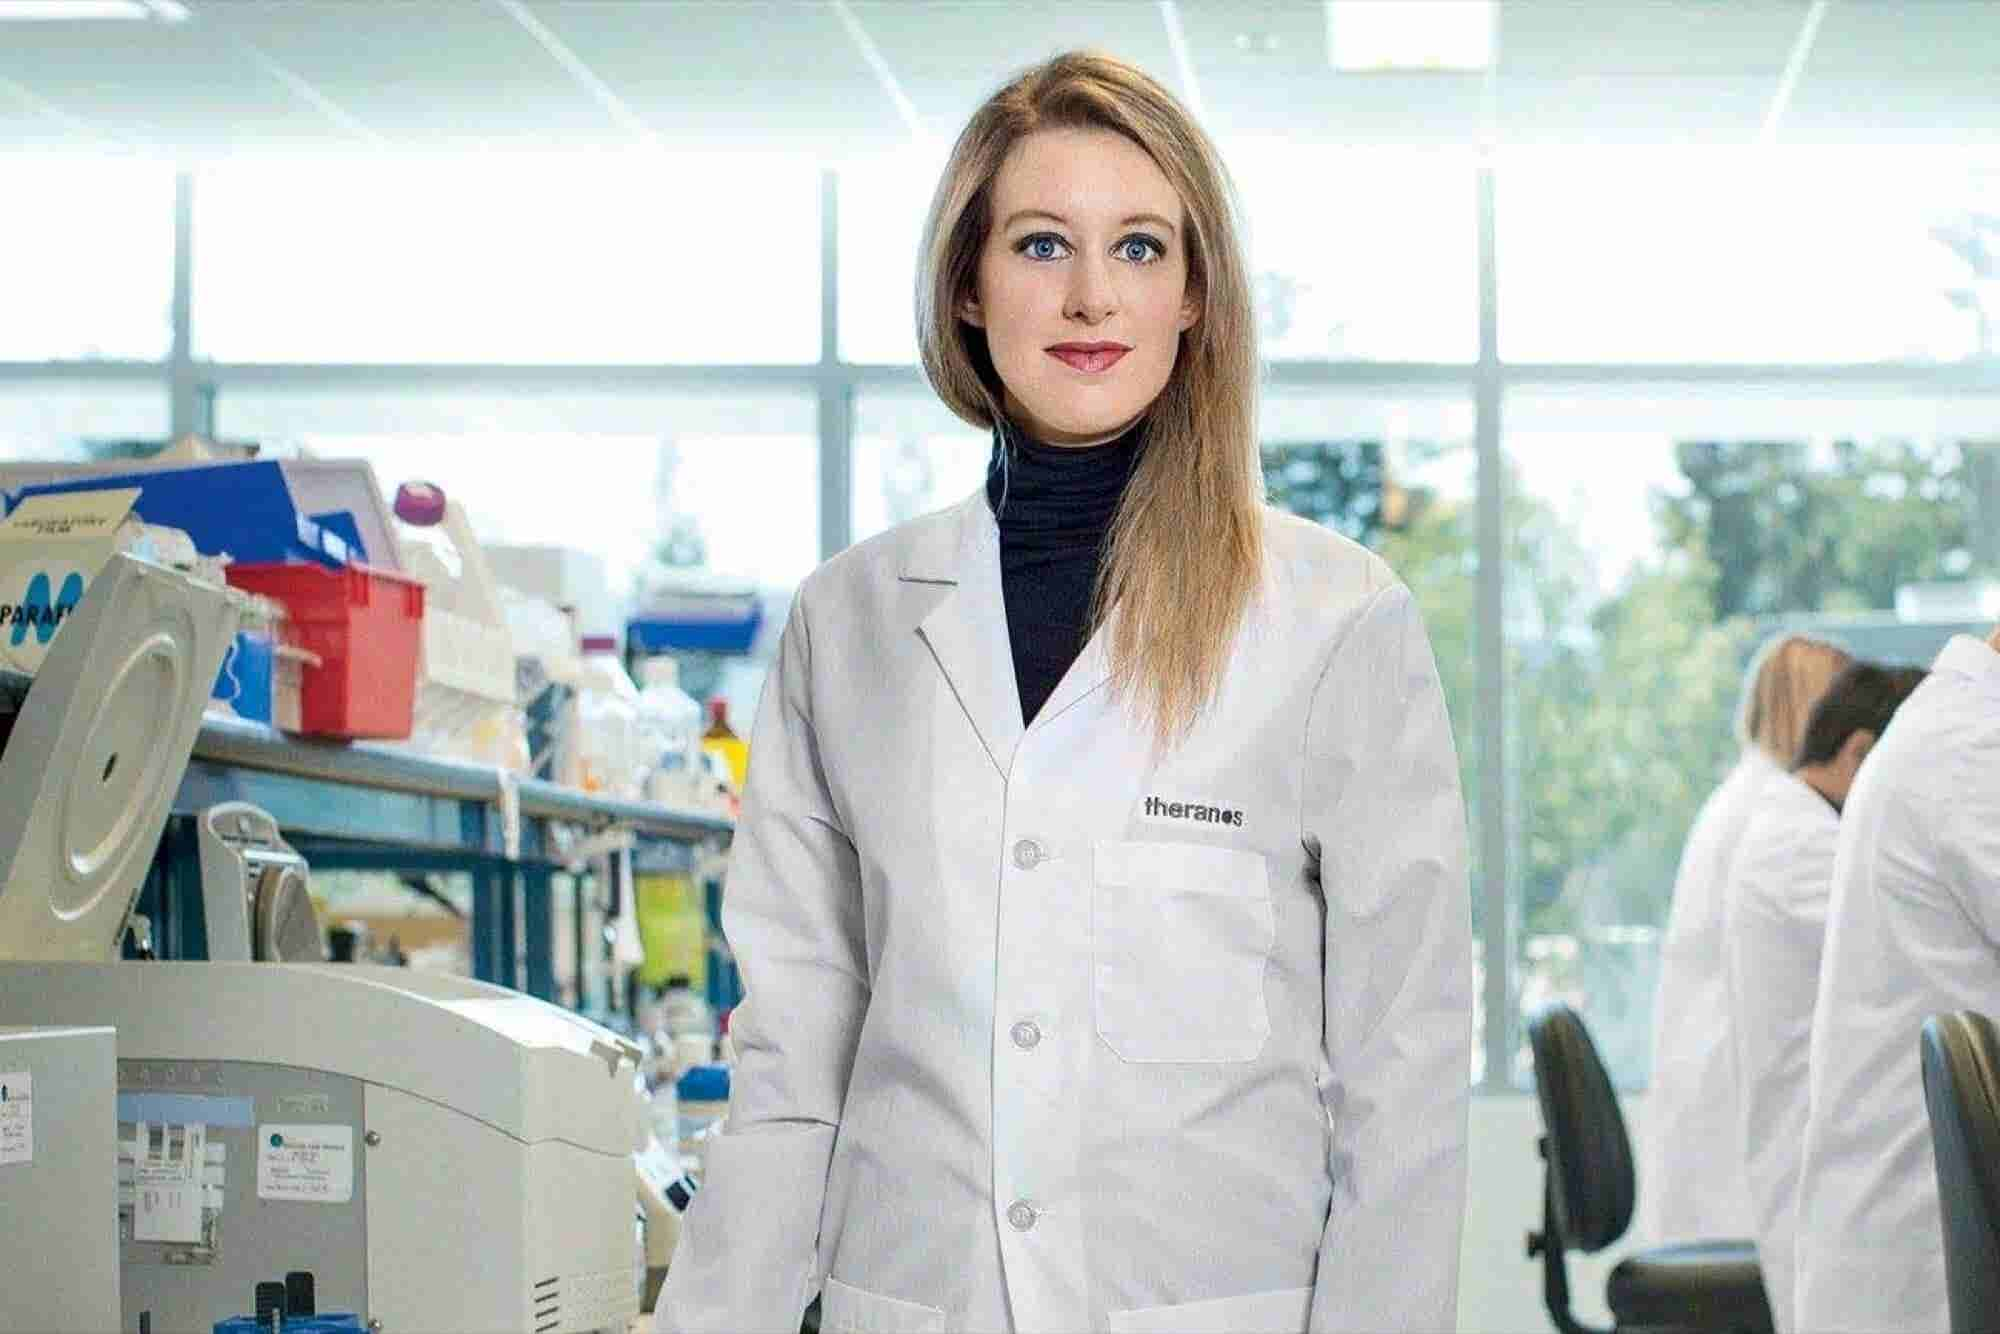 Theranos May Have Run Blood Tests Despite Quality Issues